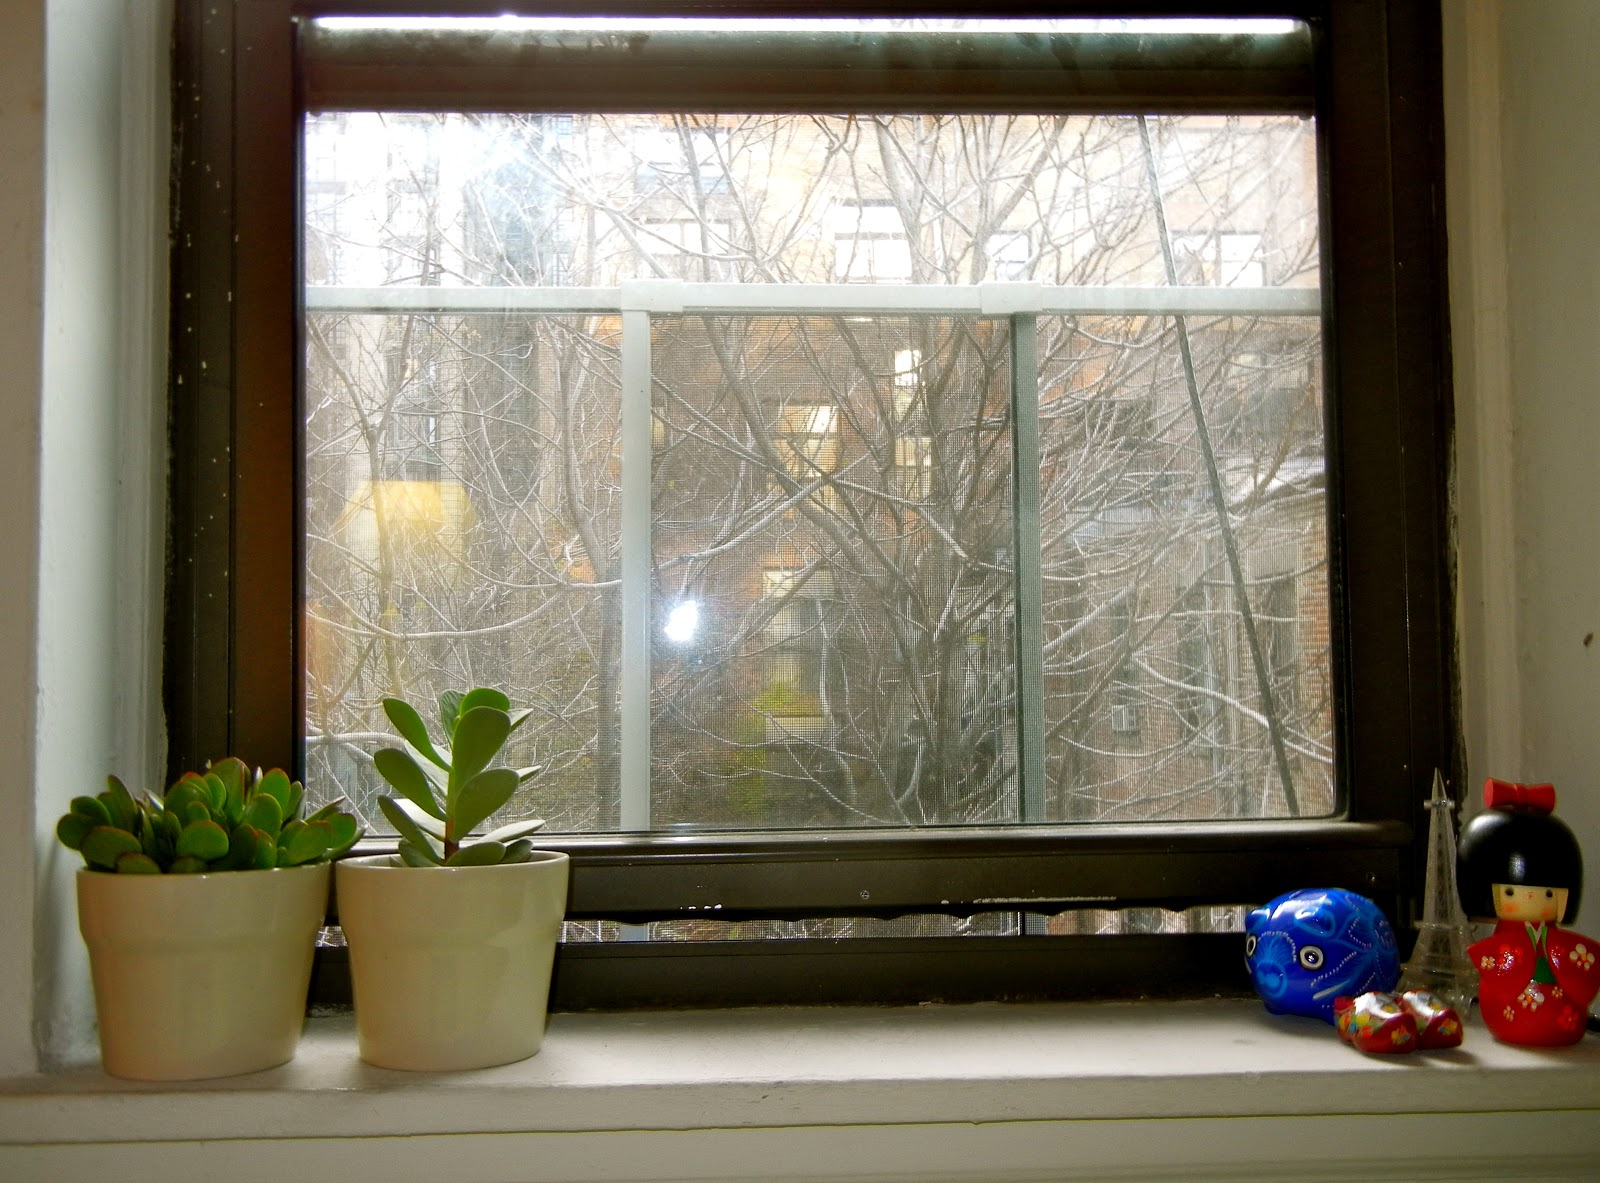 a curious gardener: NYC weekend